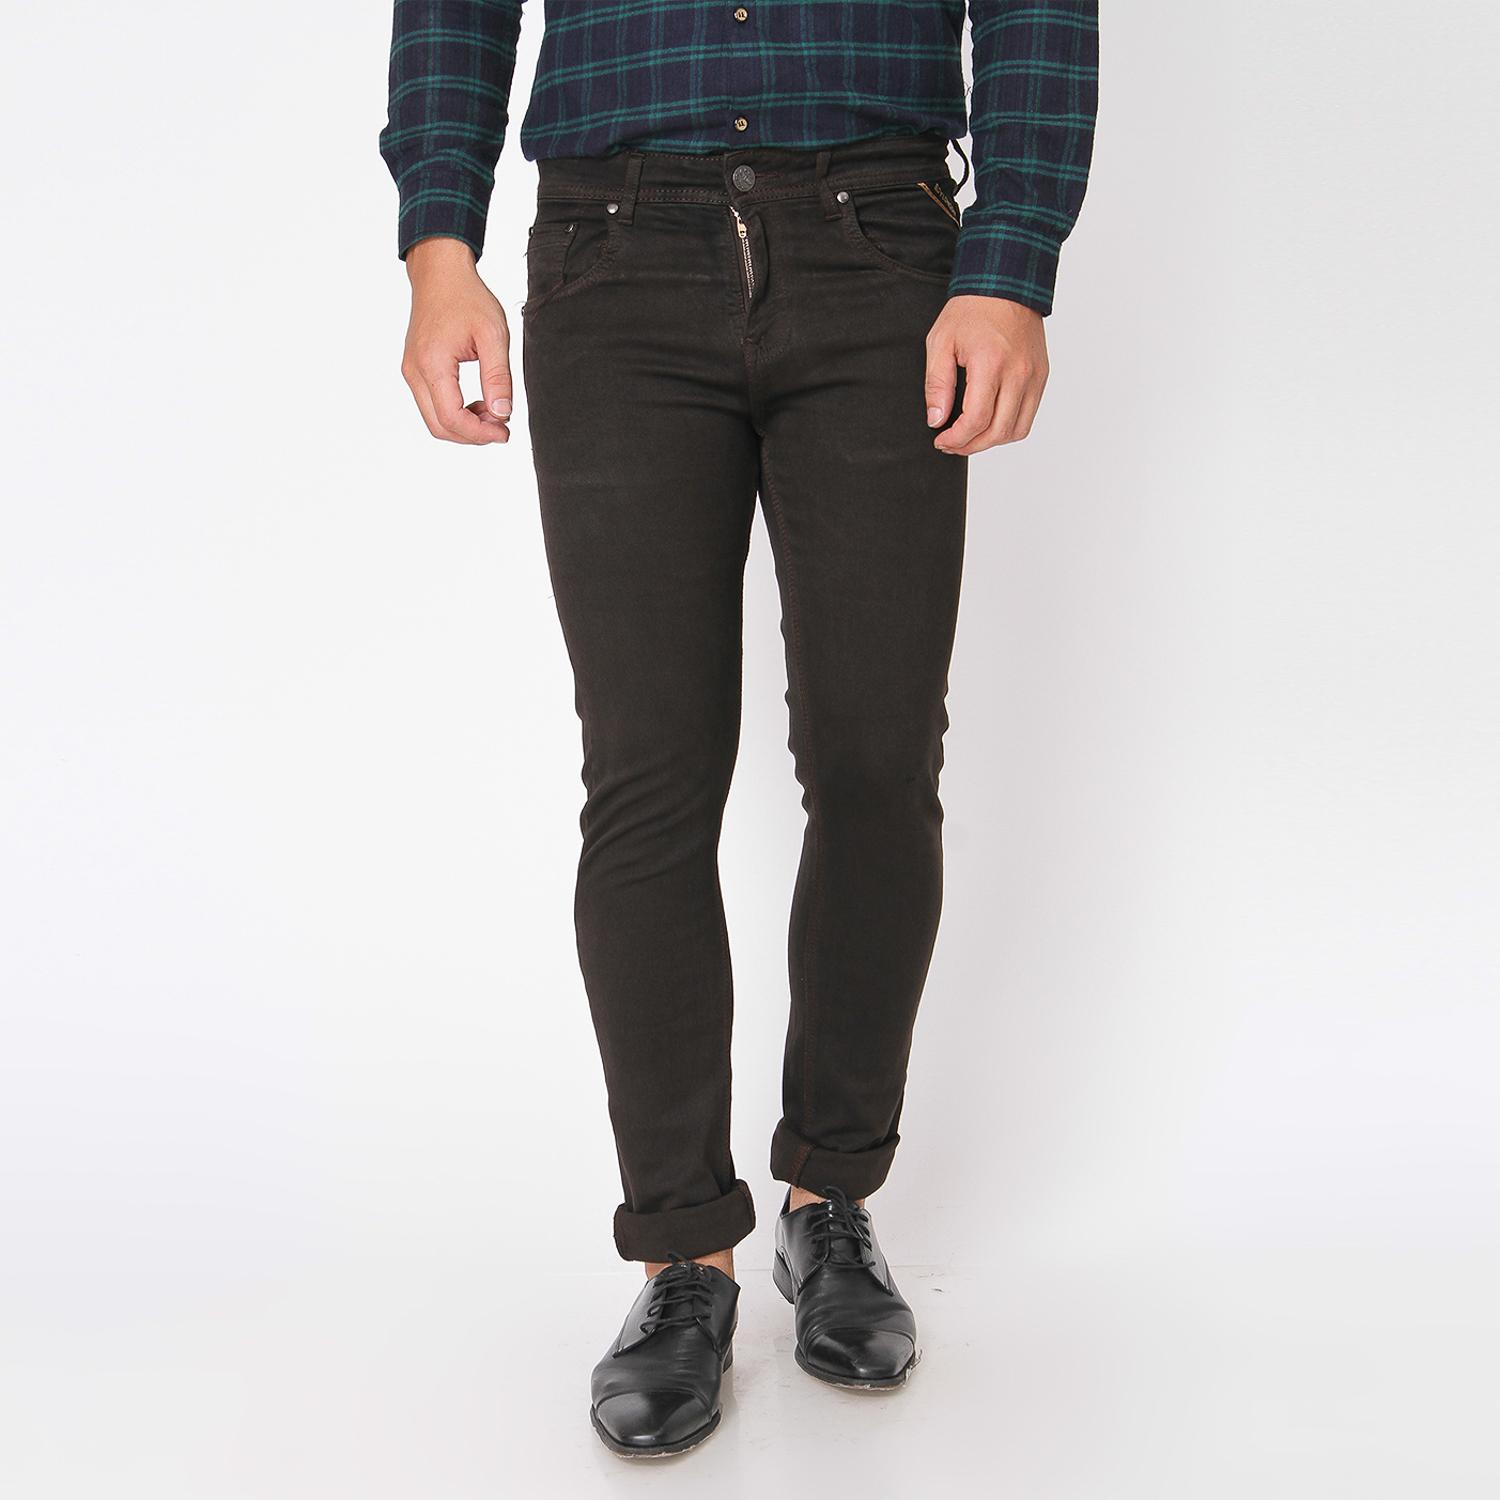 Boy London Celana Jeans Pria Original - Dark Brown Slim Fit